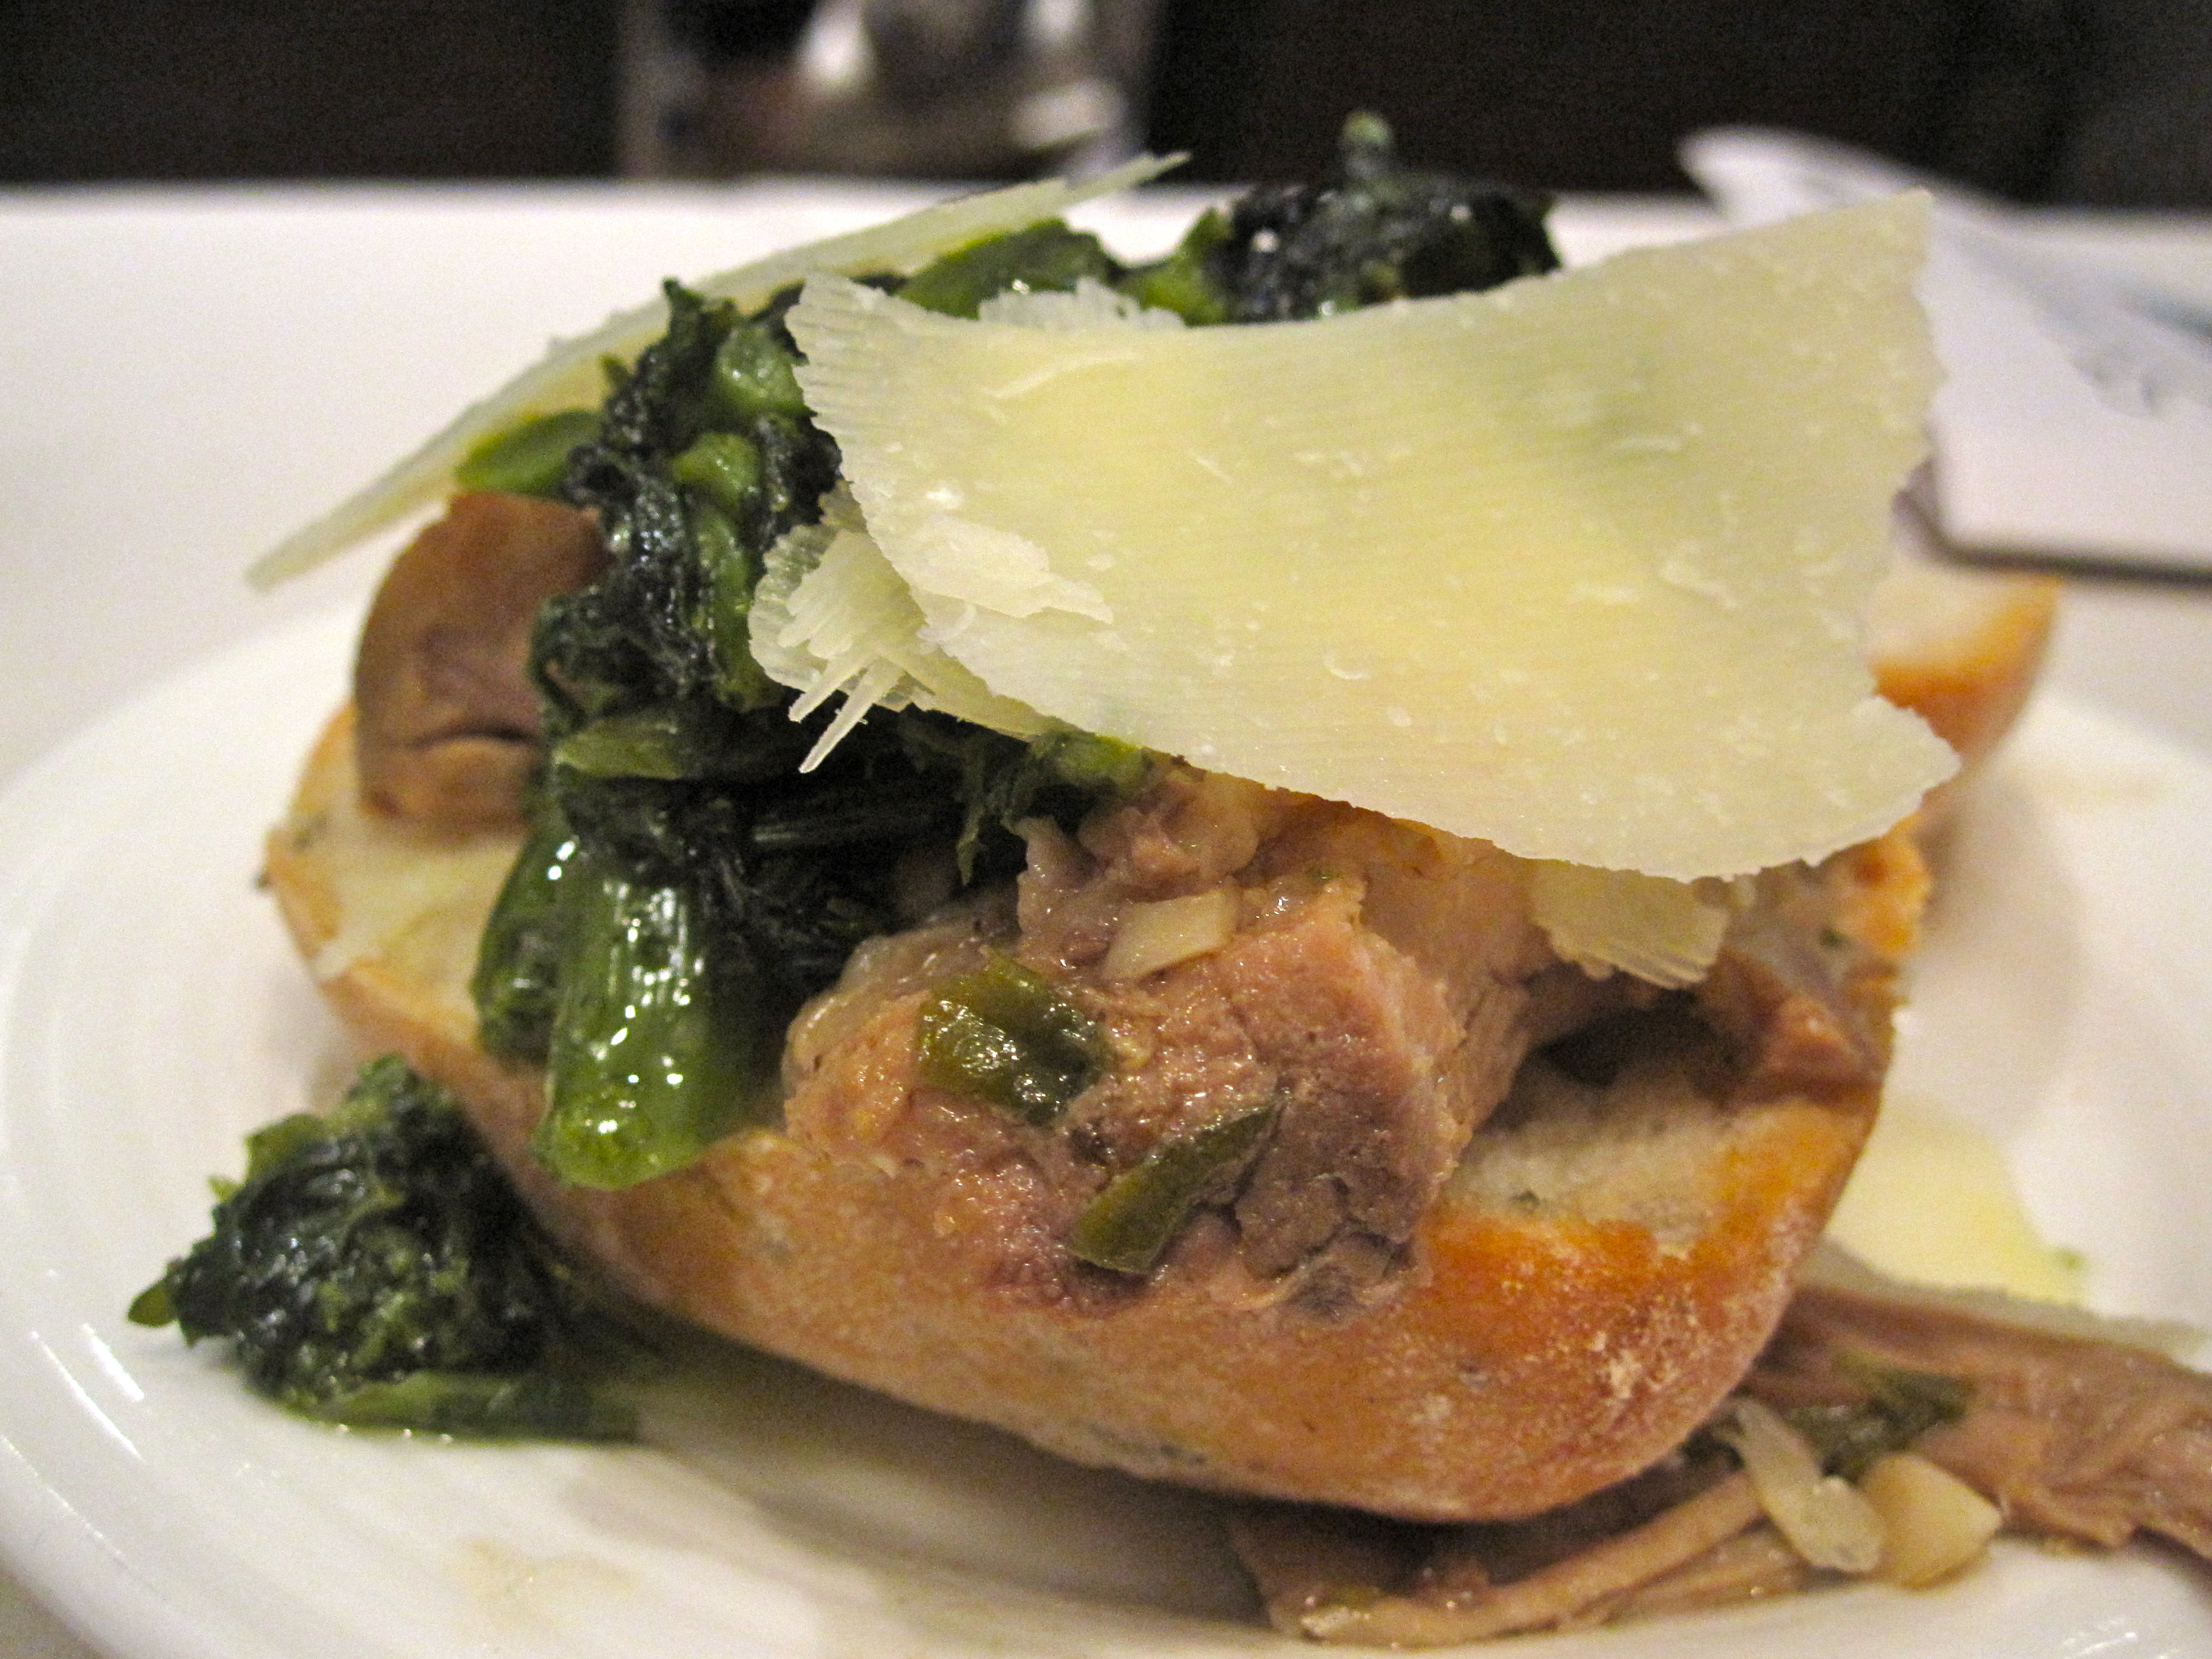 The porchetta was served on a sandwich roll with braised broccoli rabe and shaved parmesan cheese.